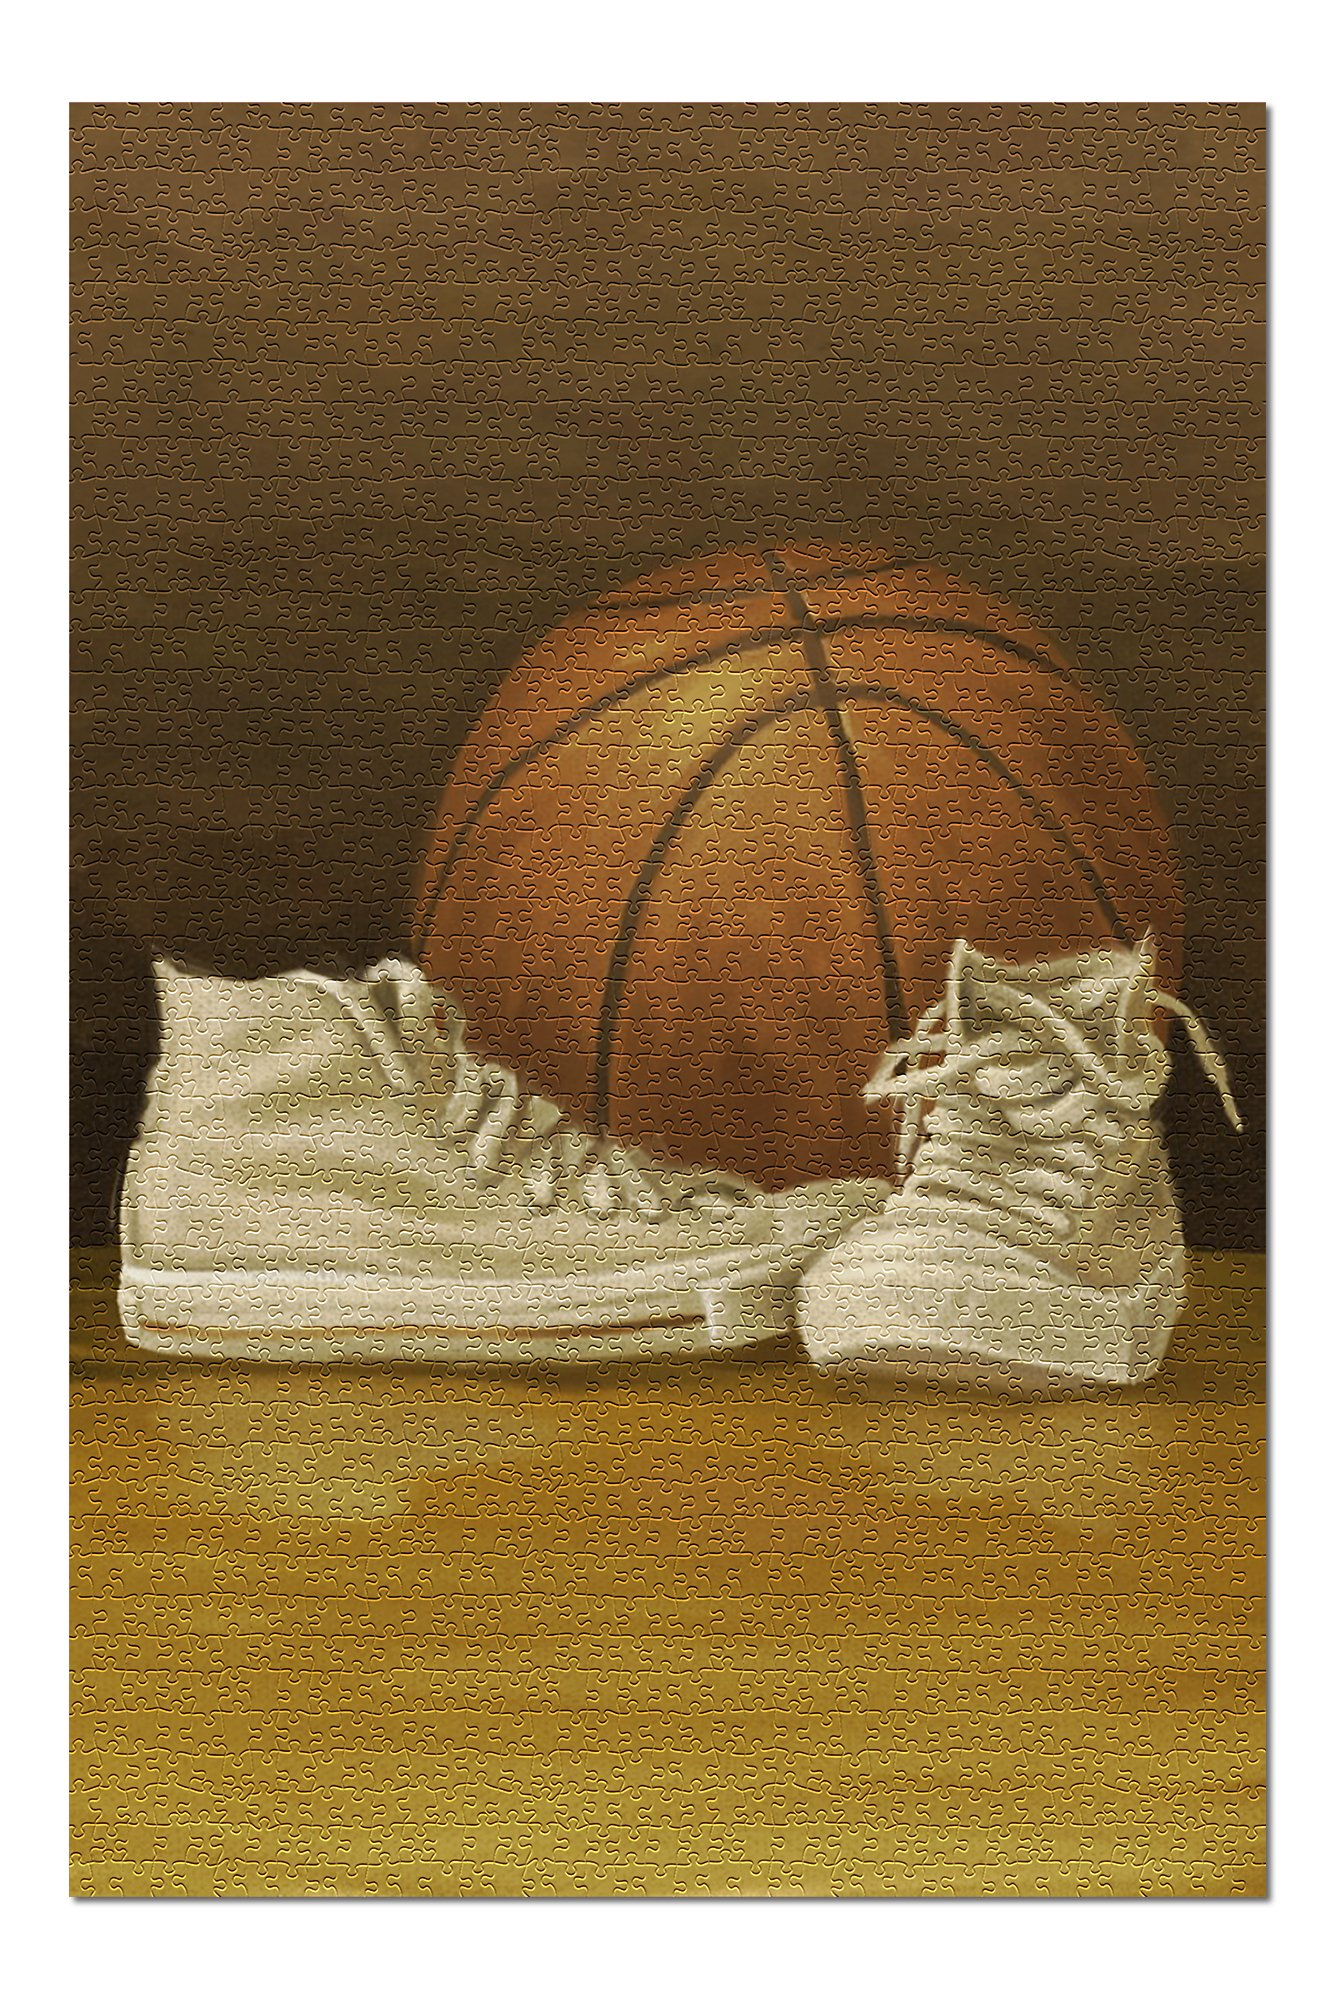 Basketball - Oil Painting (Premium 1000 Piece Jigsaw Puzzle for Adults, 19x27, Made in USA!)